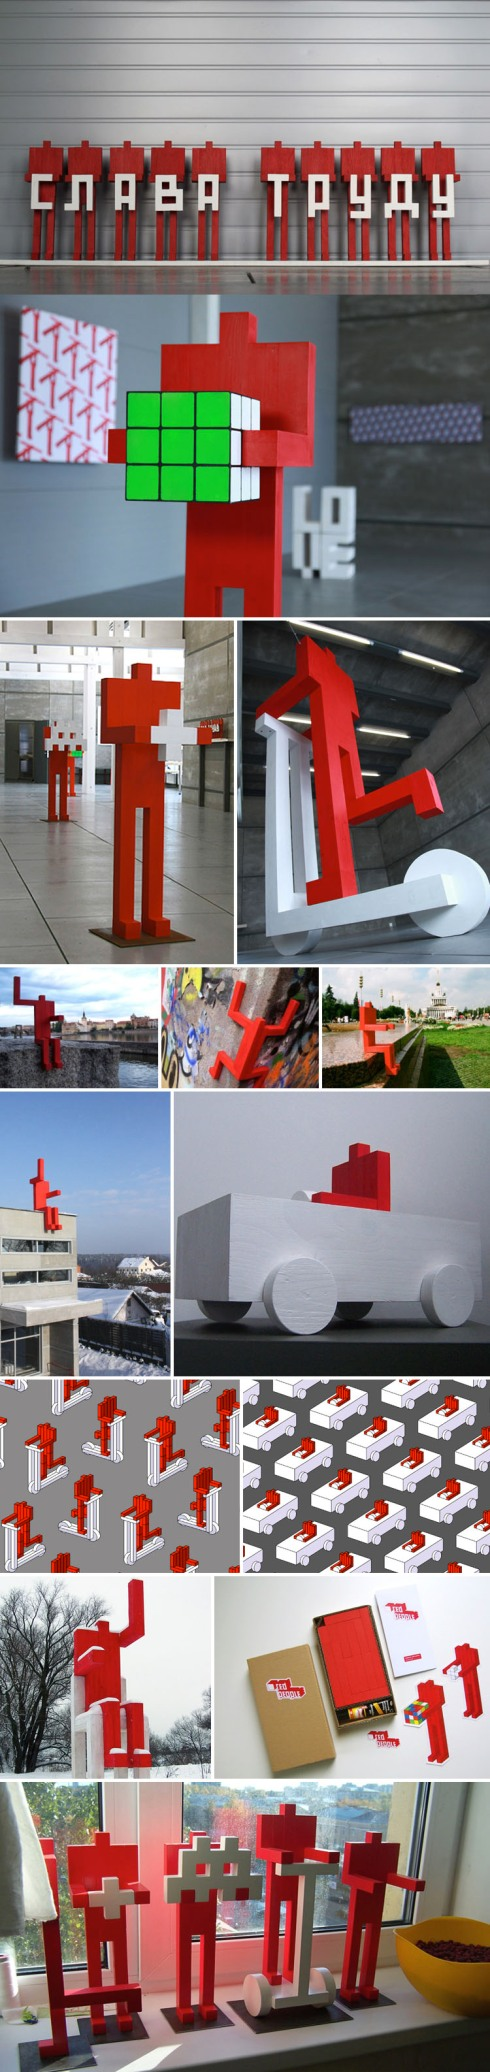 Russian Contemporary Art, Red Men Statues, cool, viral, fun installation, design, collabcubed